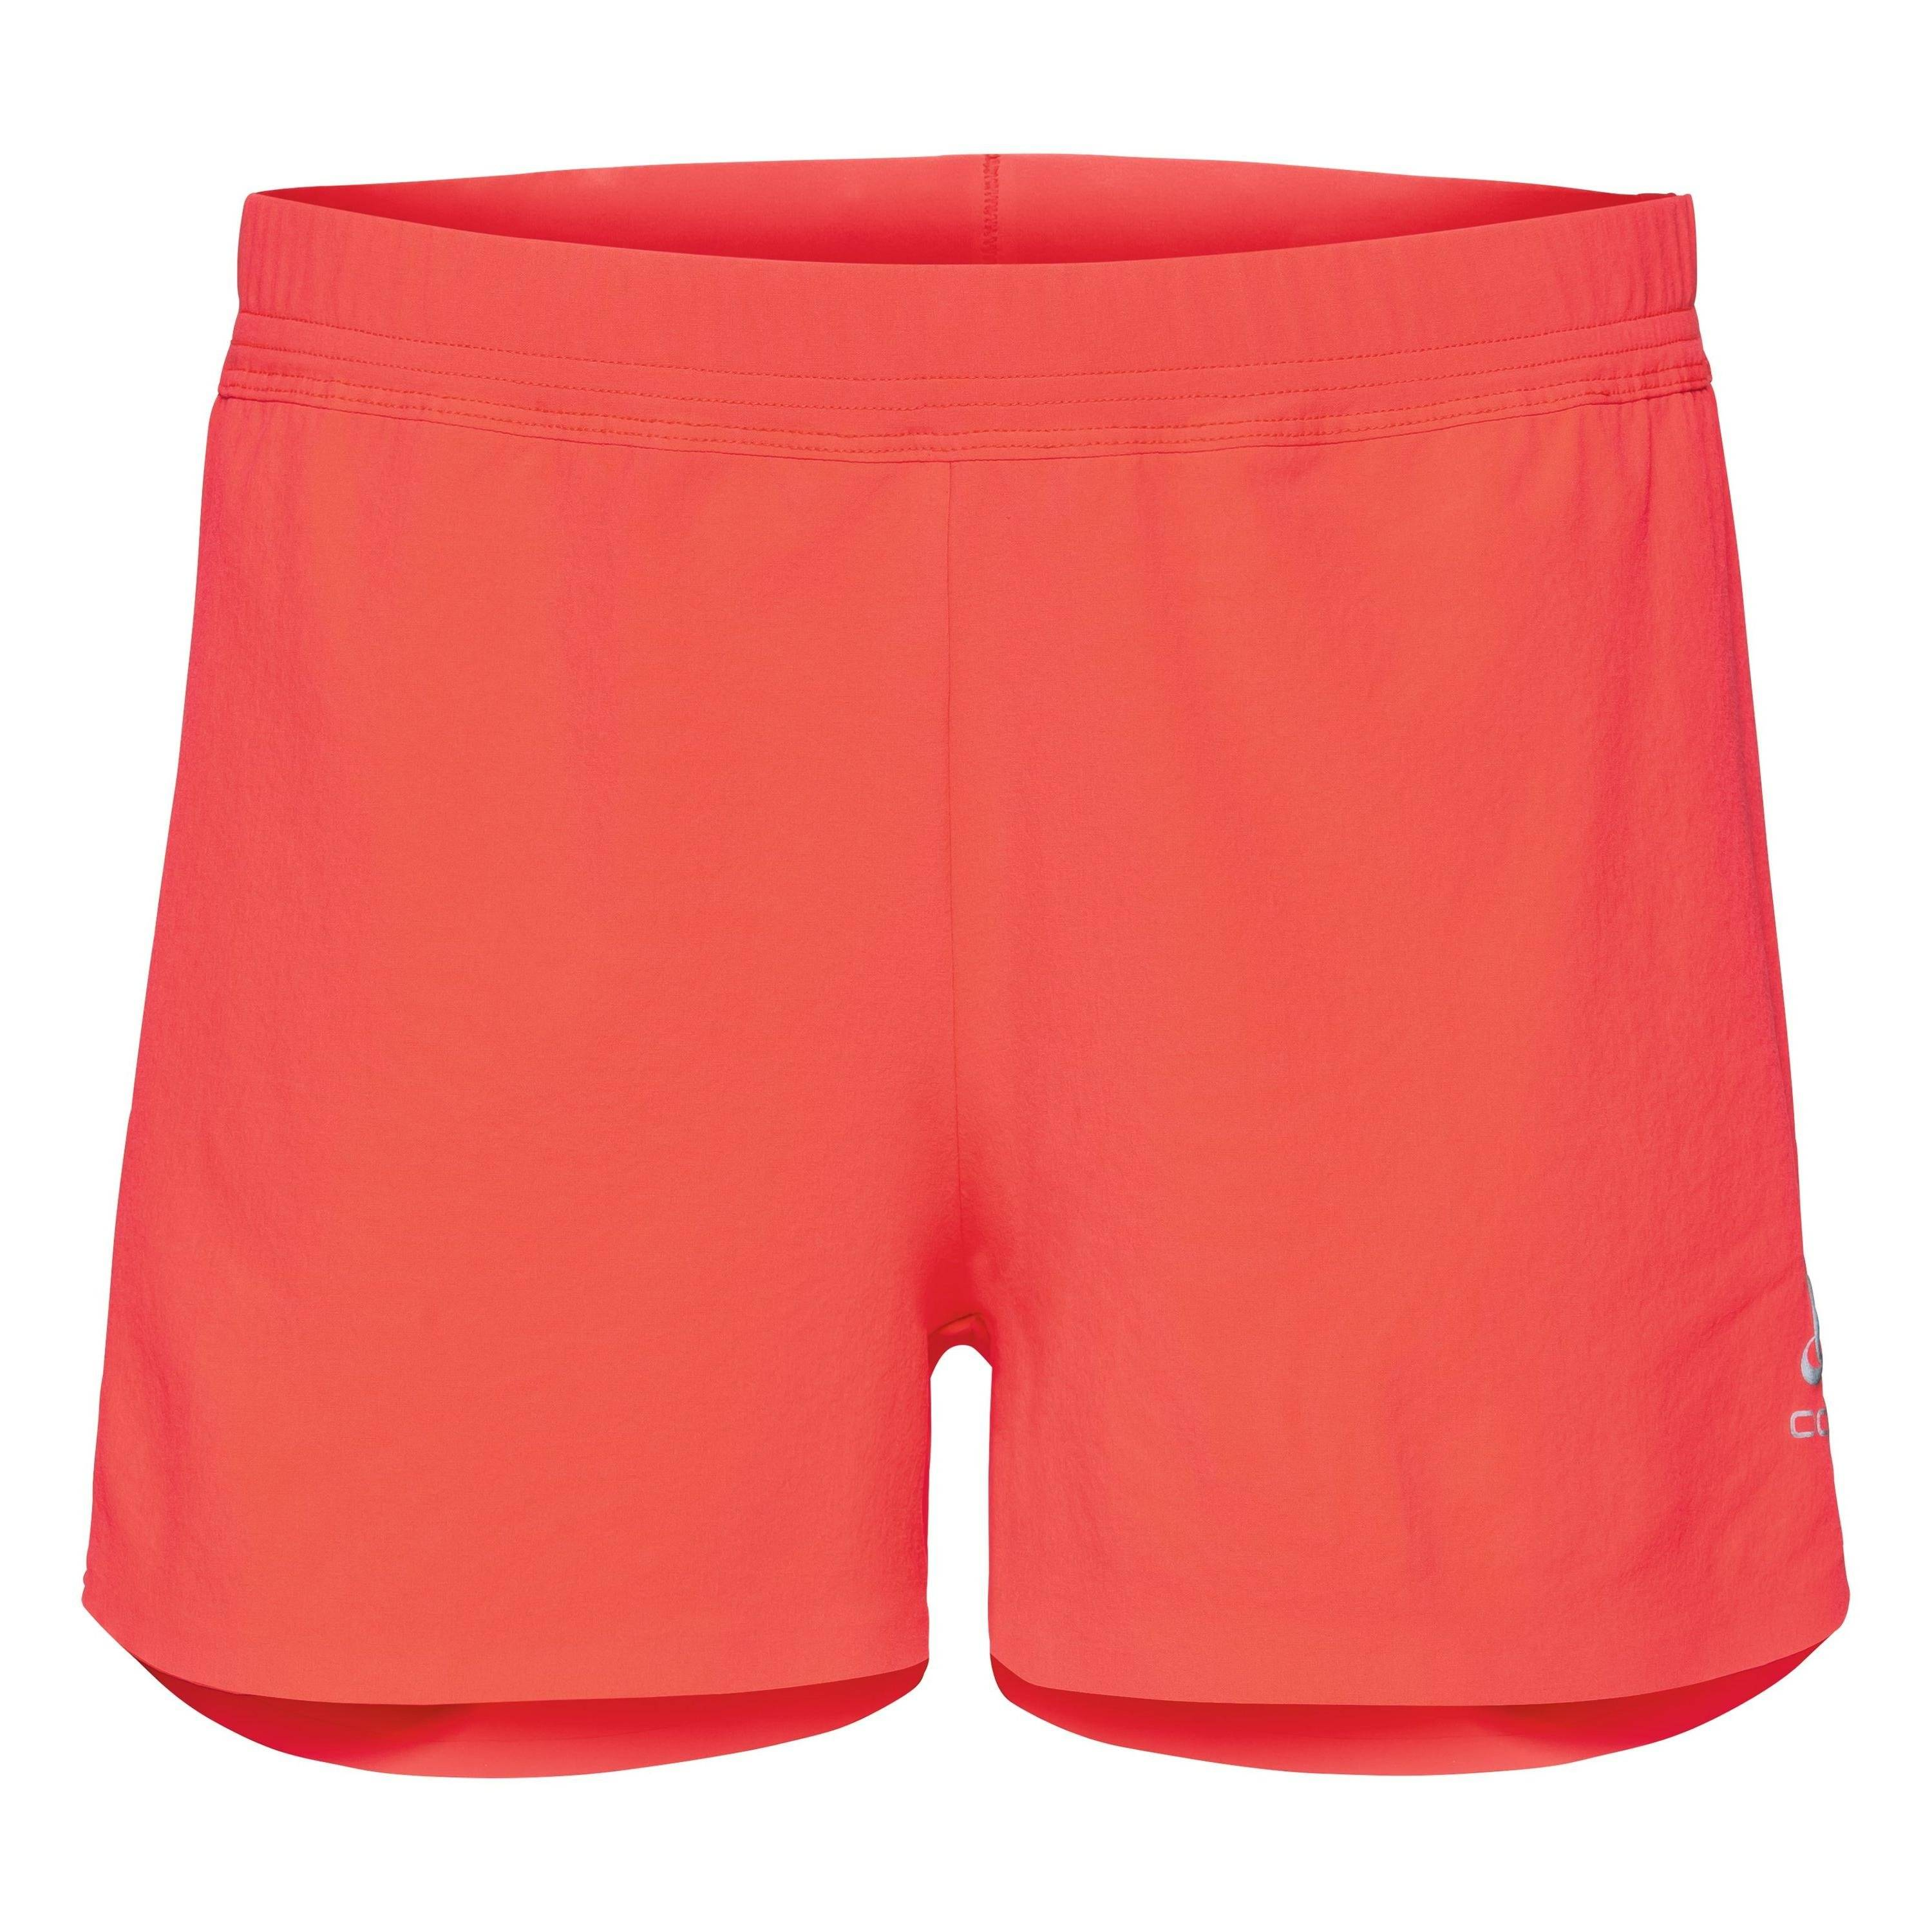 Odlo Short ZEROWEIGHT X-LIGHT fiery coral taille: XL